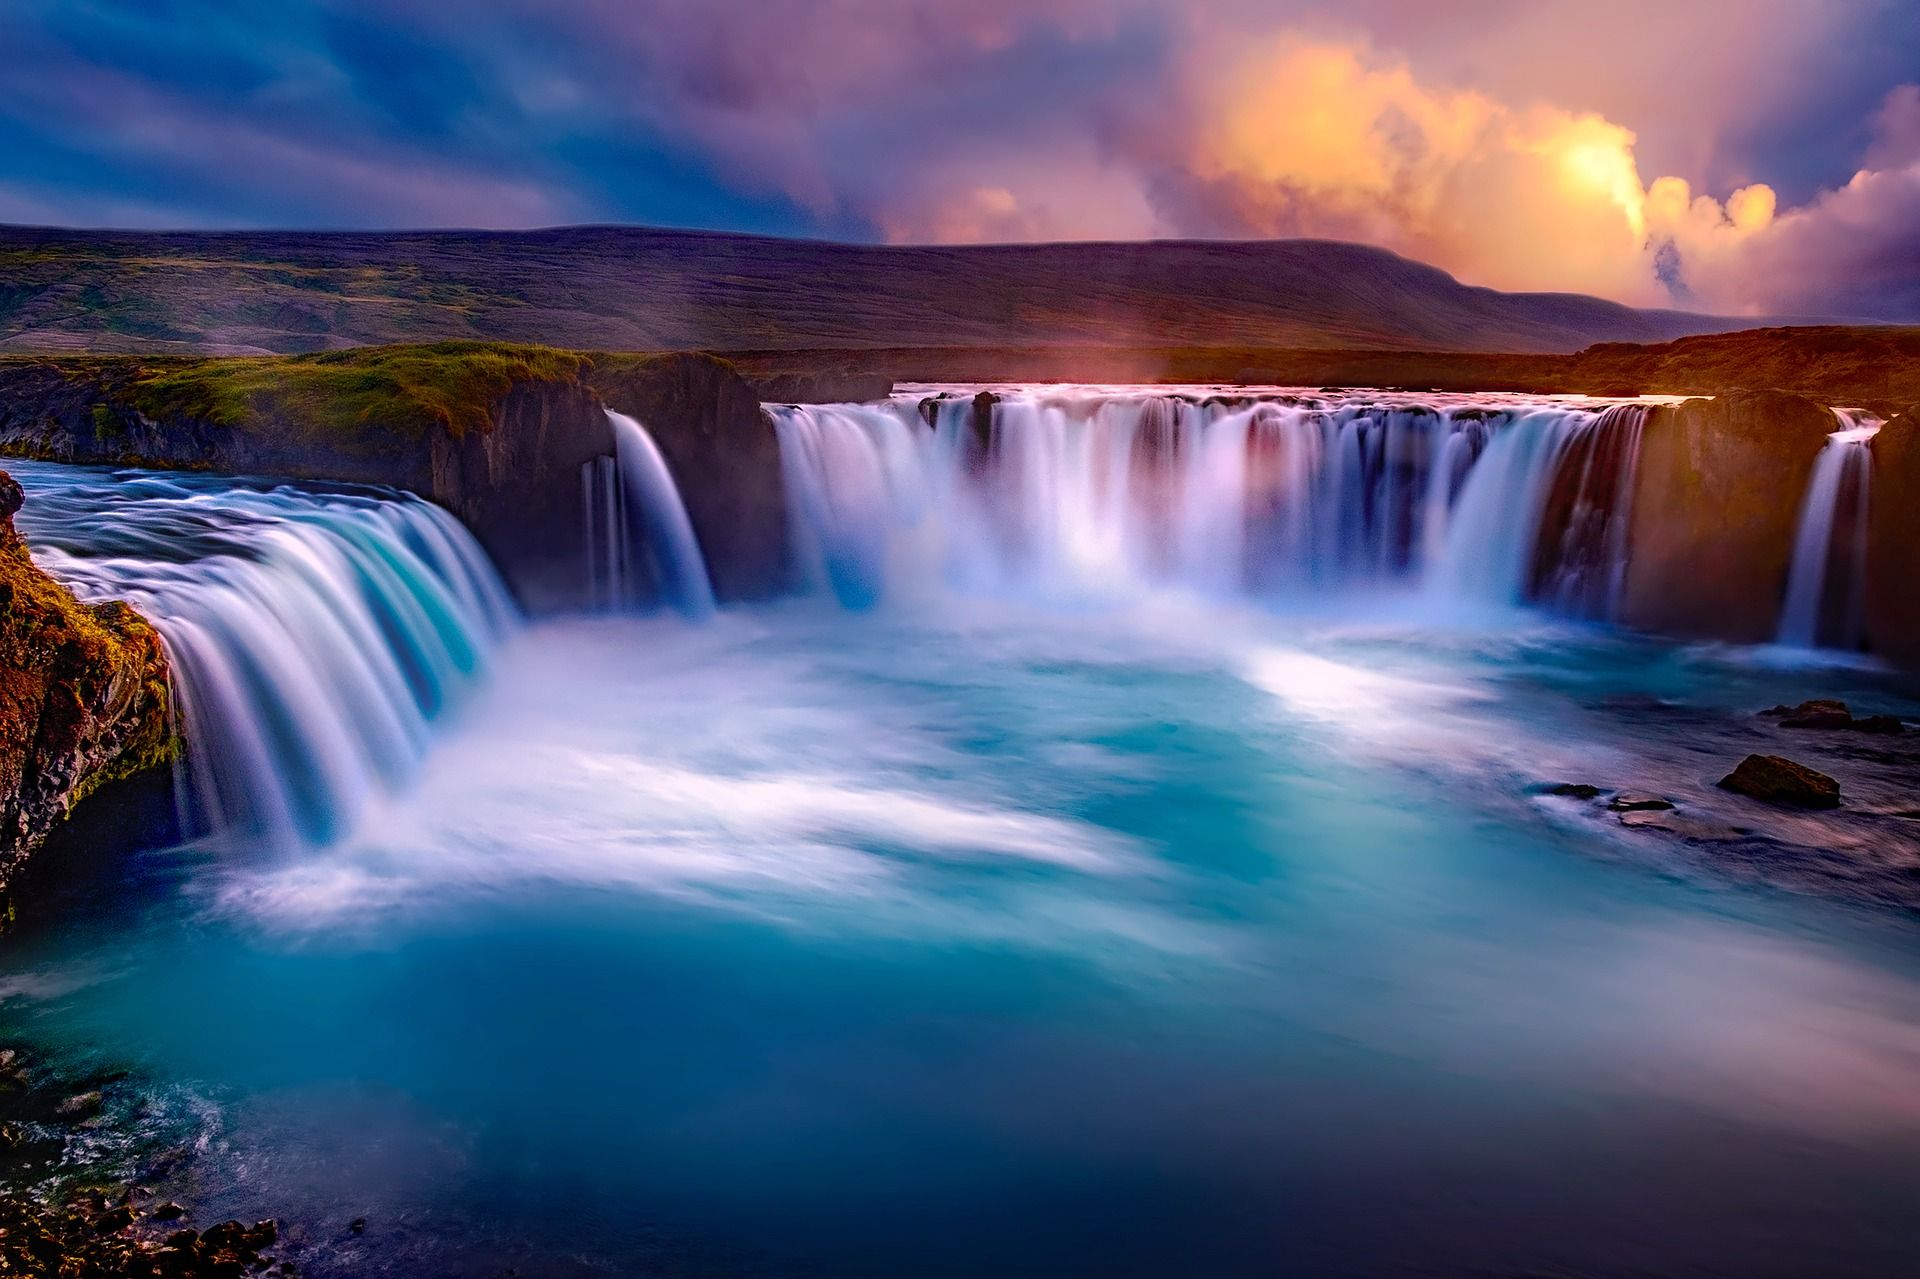 The beutiful Icelandic waterfall, Goðafoss.